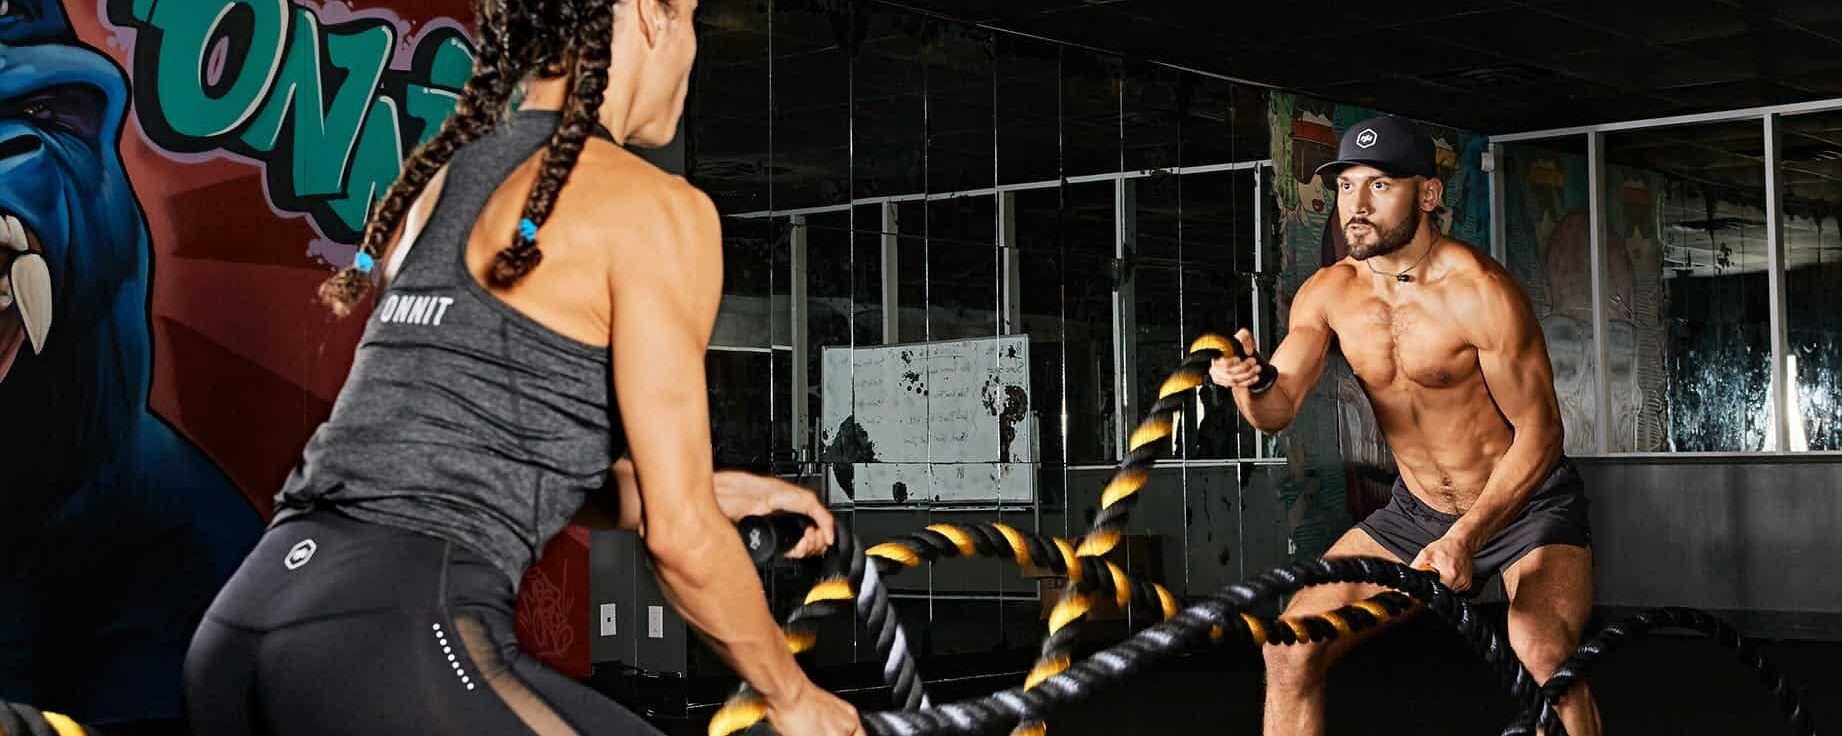 In the Battle Against Fat, All You Need Is a Rope